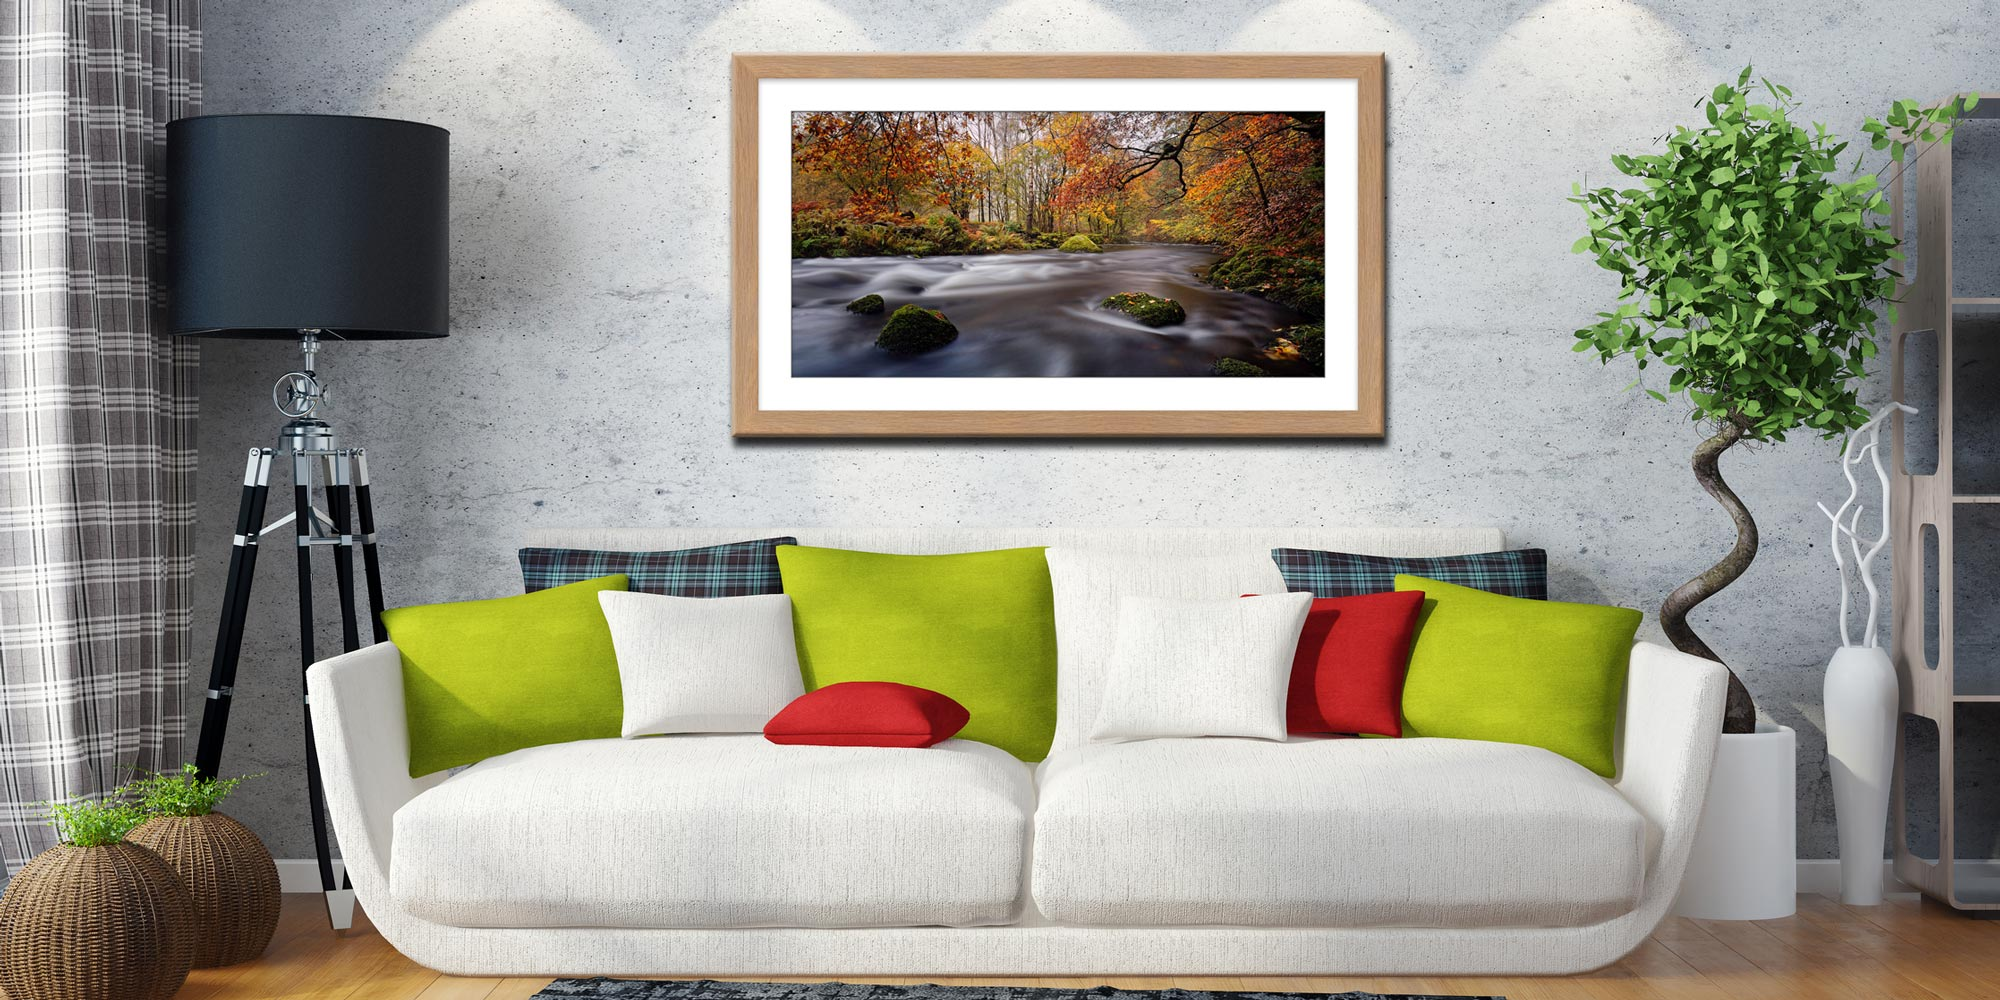 Autumn Colours of River Rothay - Framed Print with Mount on Wall